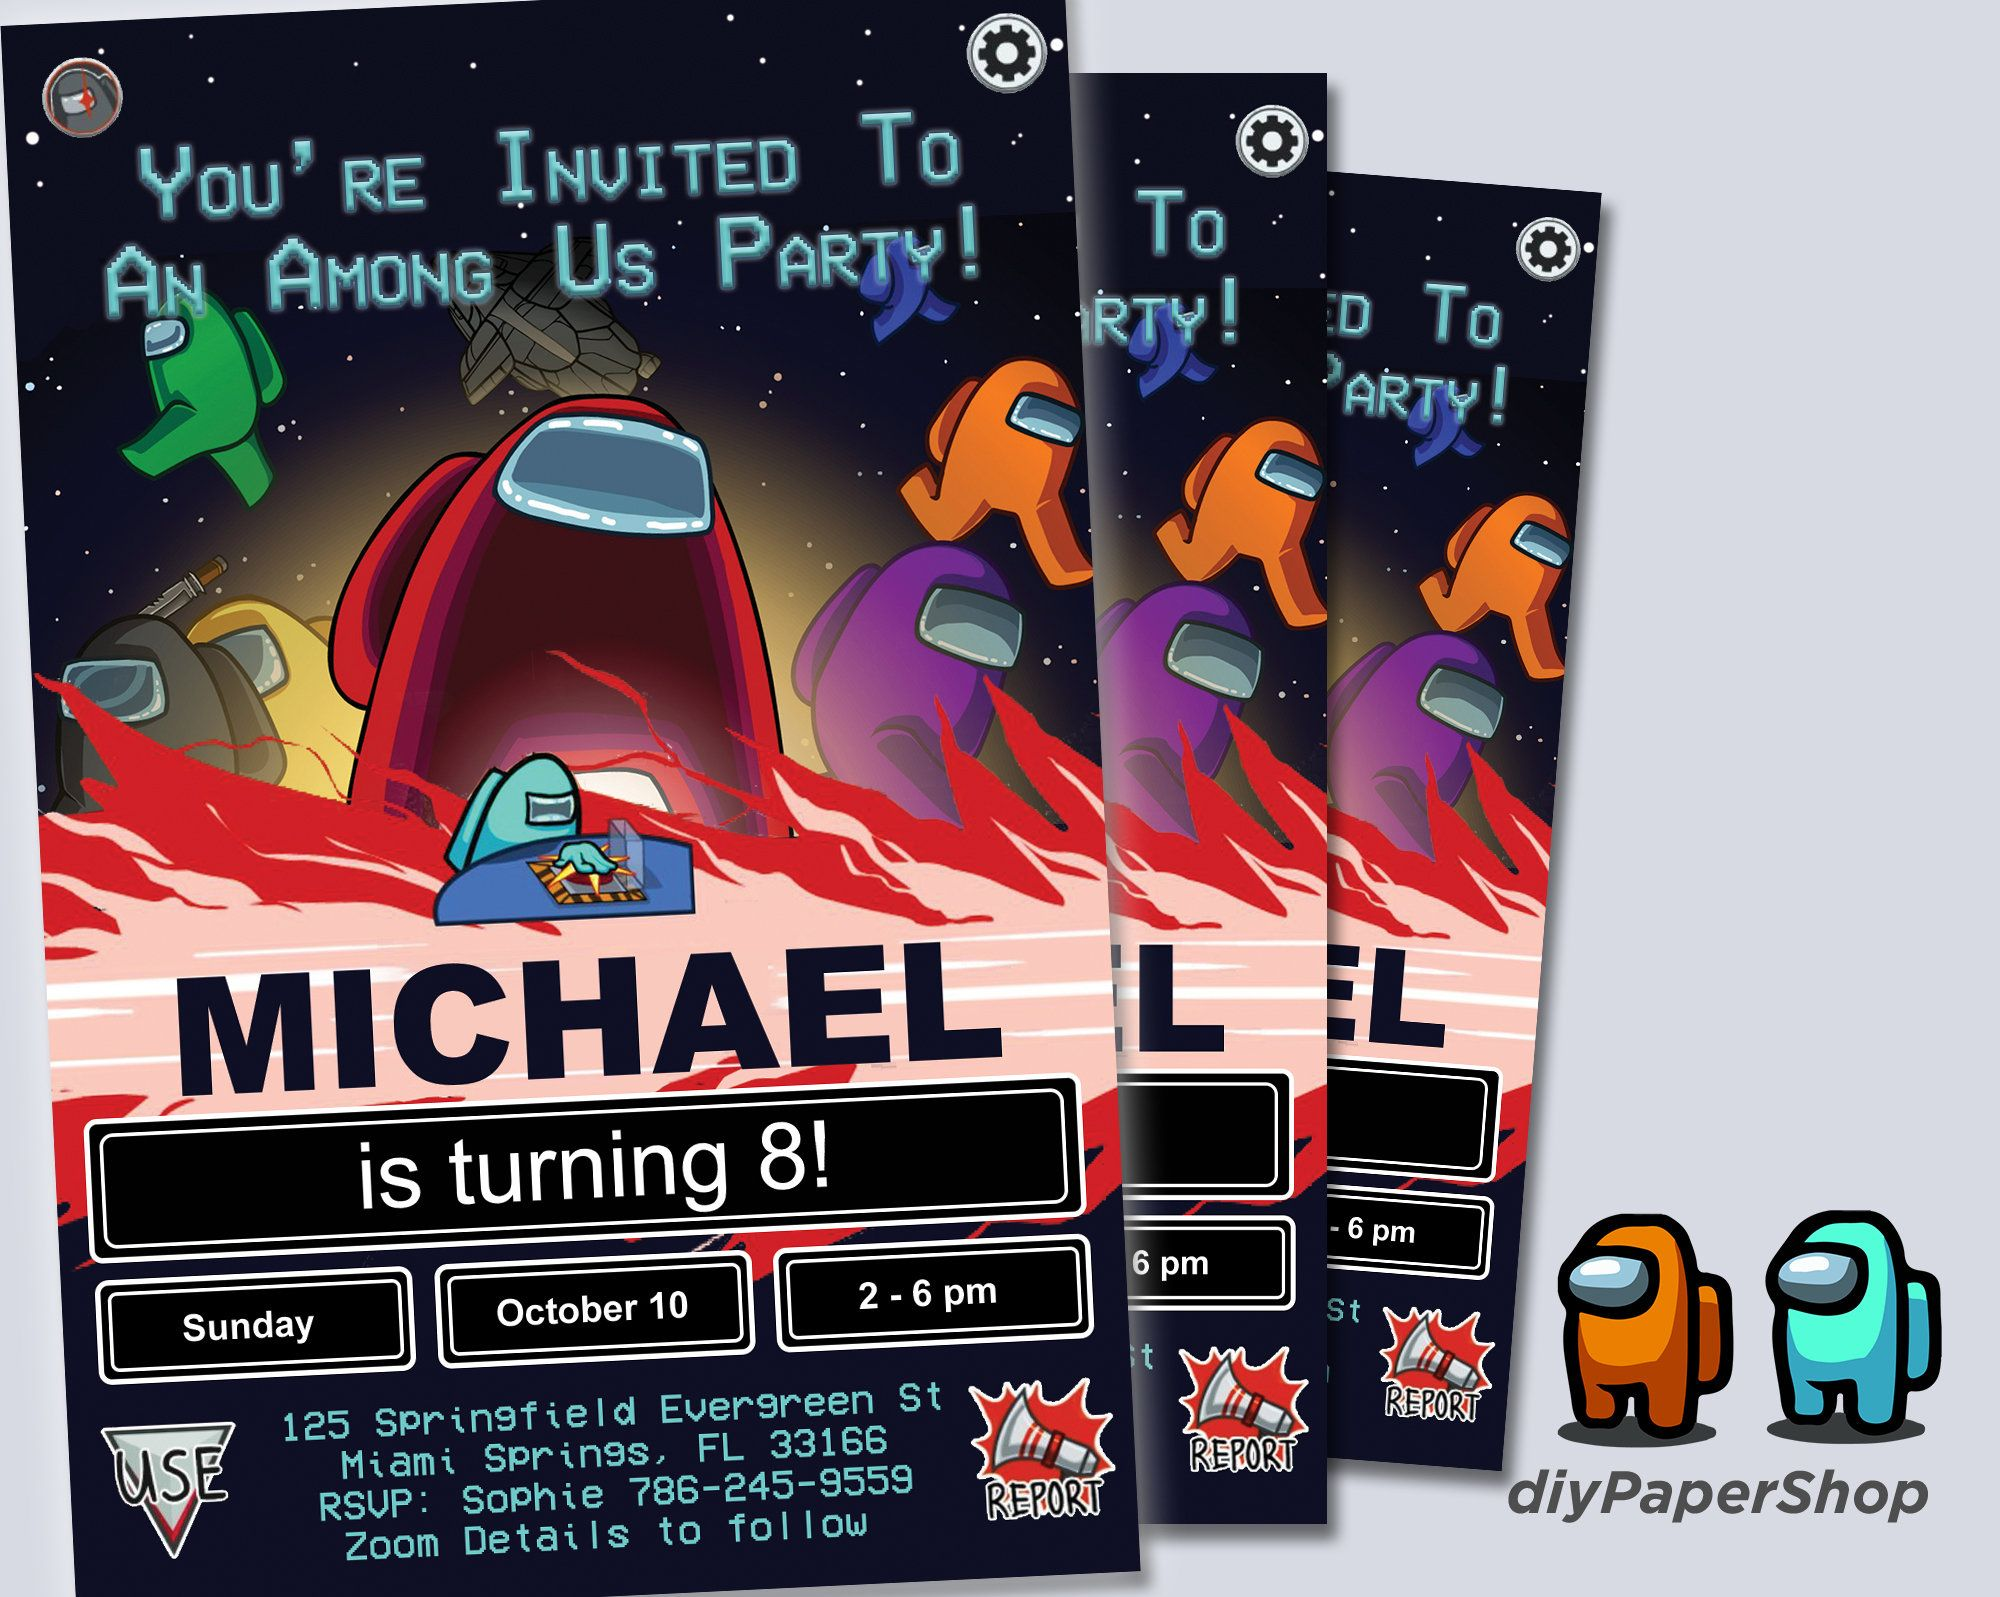 Among Us Birthday Invitation Gamer Party Invite Among Us Etsy In 2020 Birthday Invitations Birthday Games Party Games